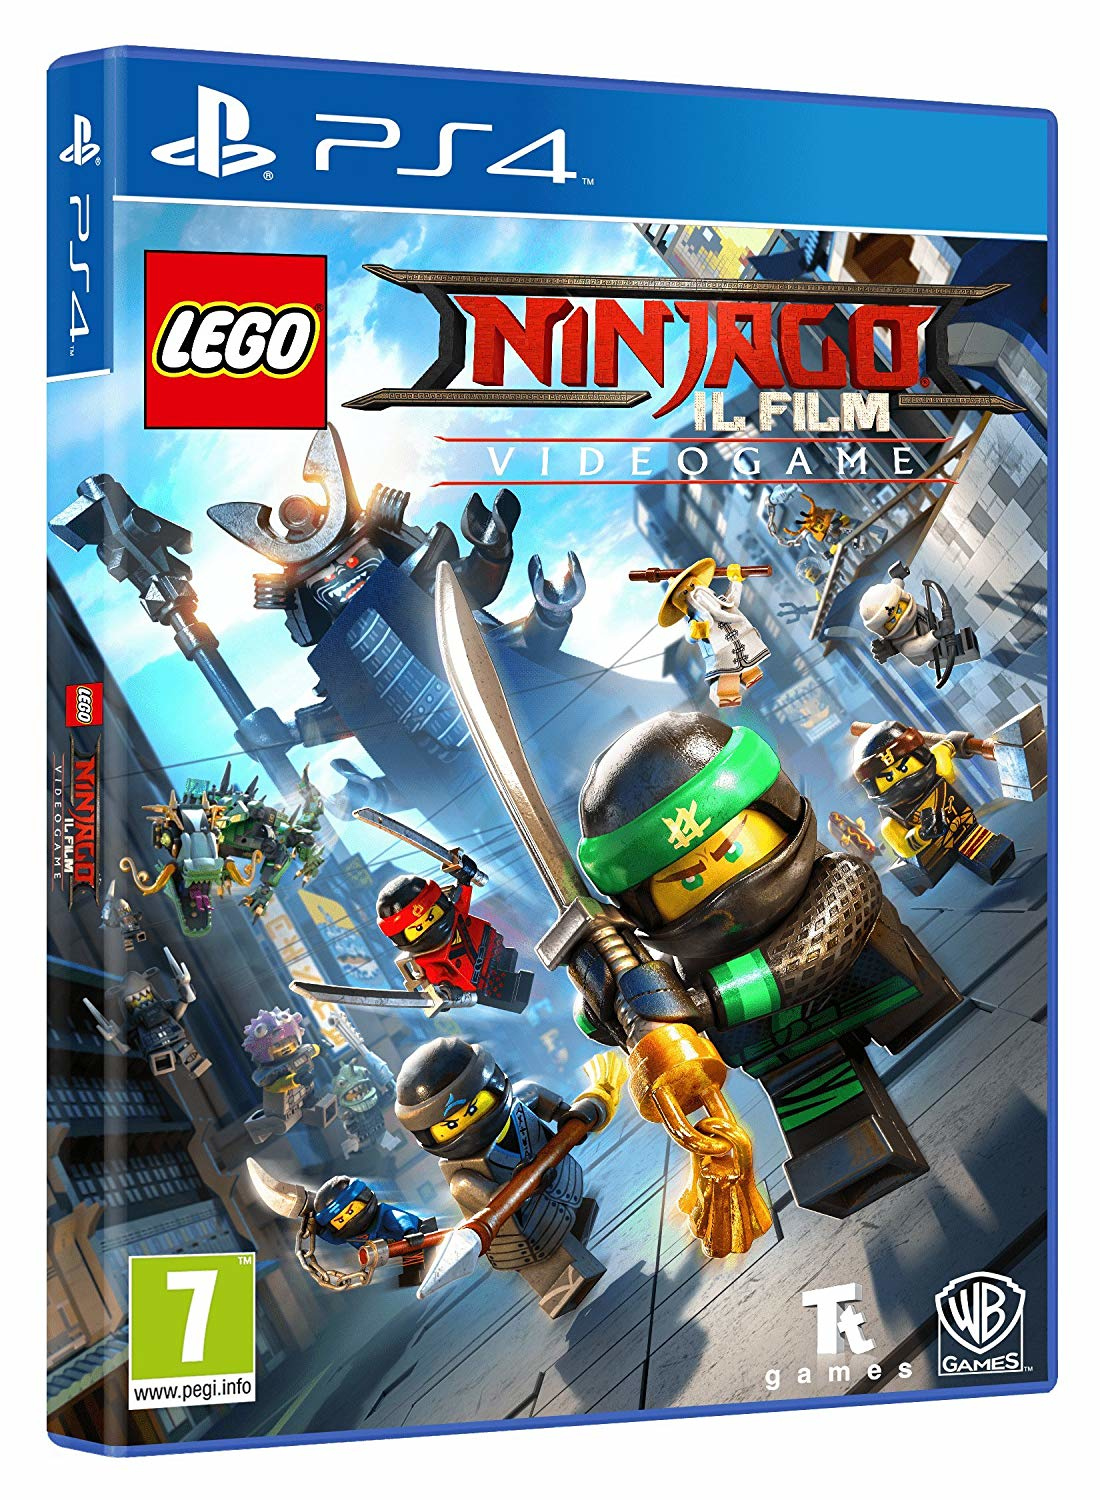 Warner Bros Game Lego Ninjago The Movie Lego Ninjago Il Film - 1000691201